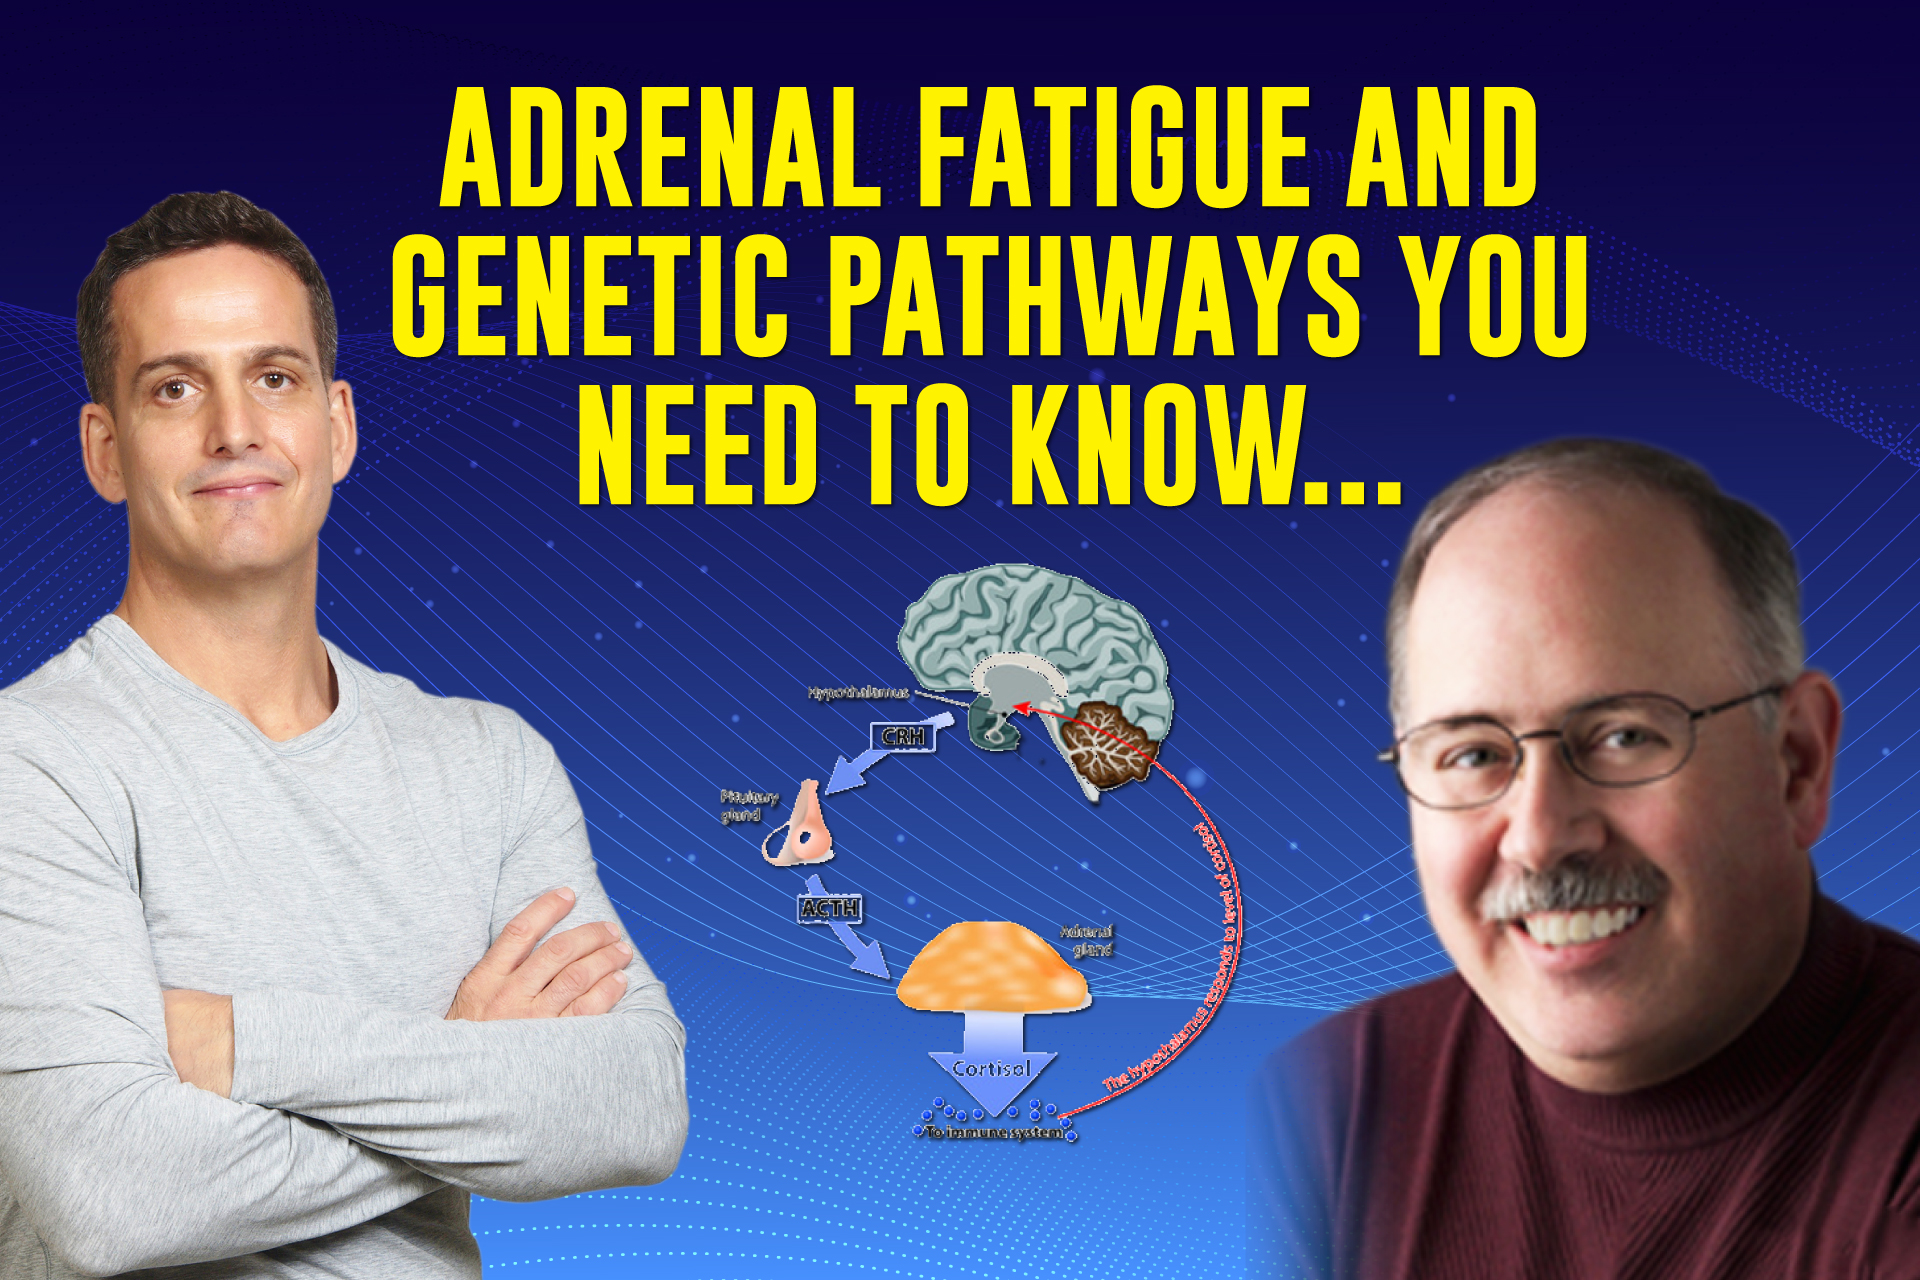 Adrenal Fatigue and Genetic Pathways You Need to Know